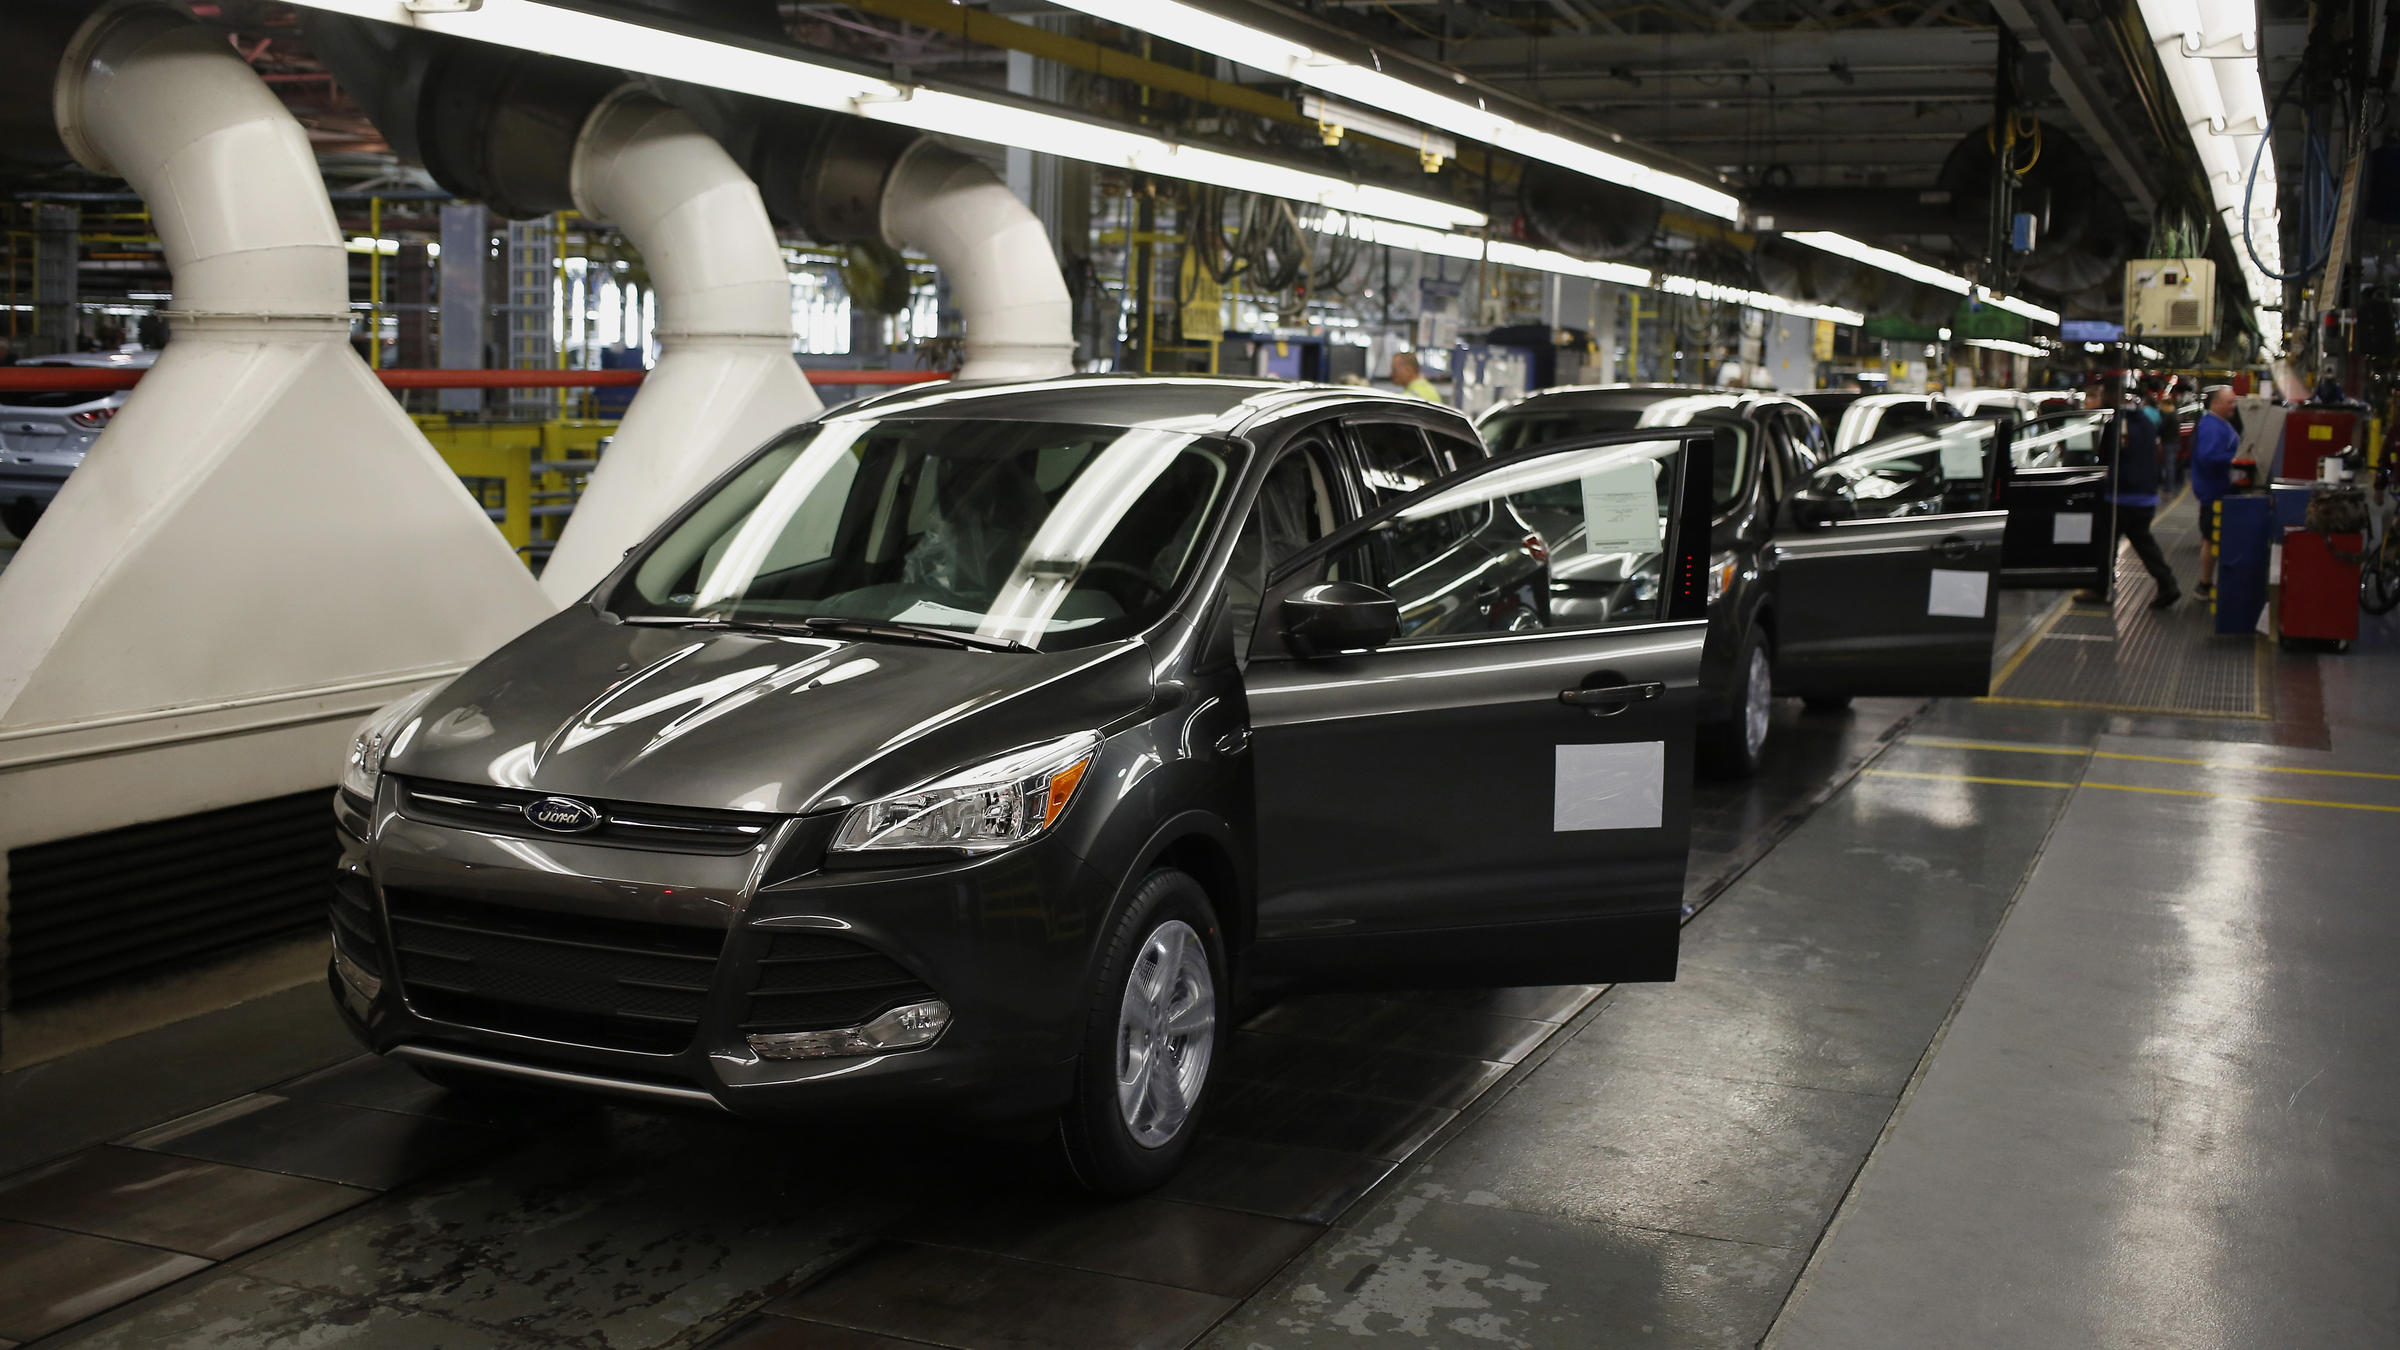 Ford won't move Lincoln assembly to Mexico — Trump on Twitter